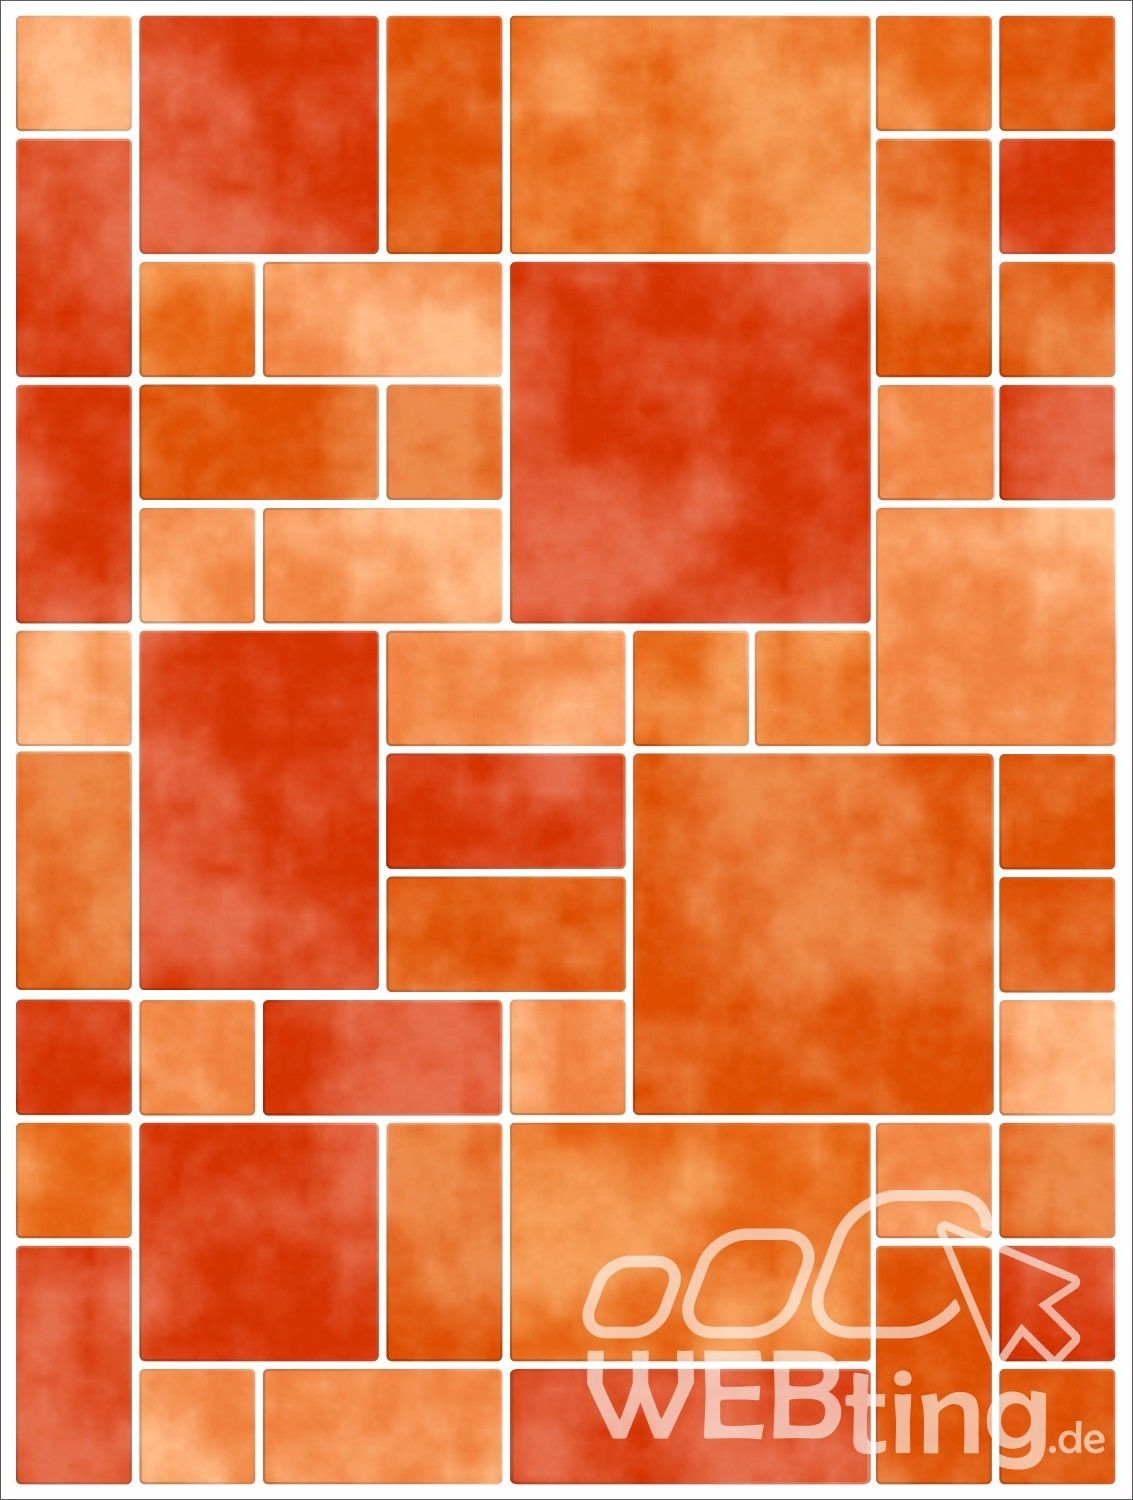 15x20cm orange fliesenaufkleber fliesen aufkleber fliesenimitat mosaik m8. Black Bedroom Furniture Sets. Home Design Ideas